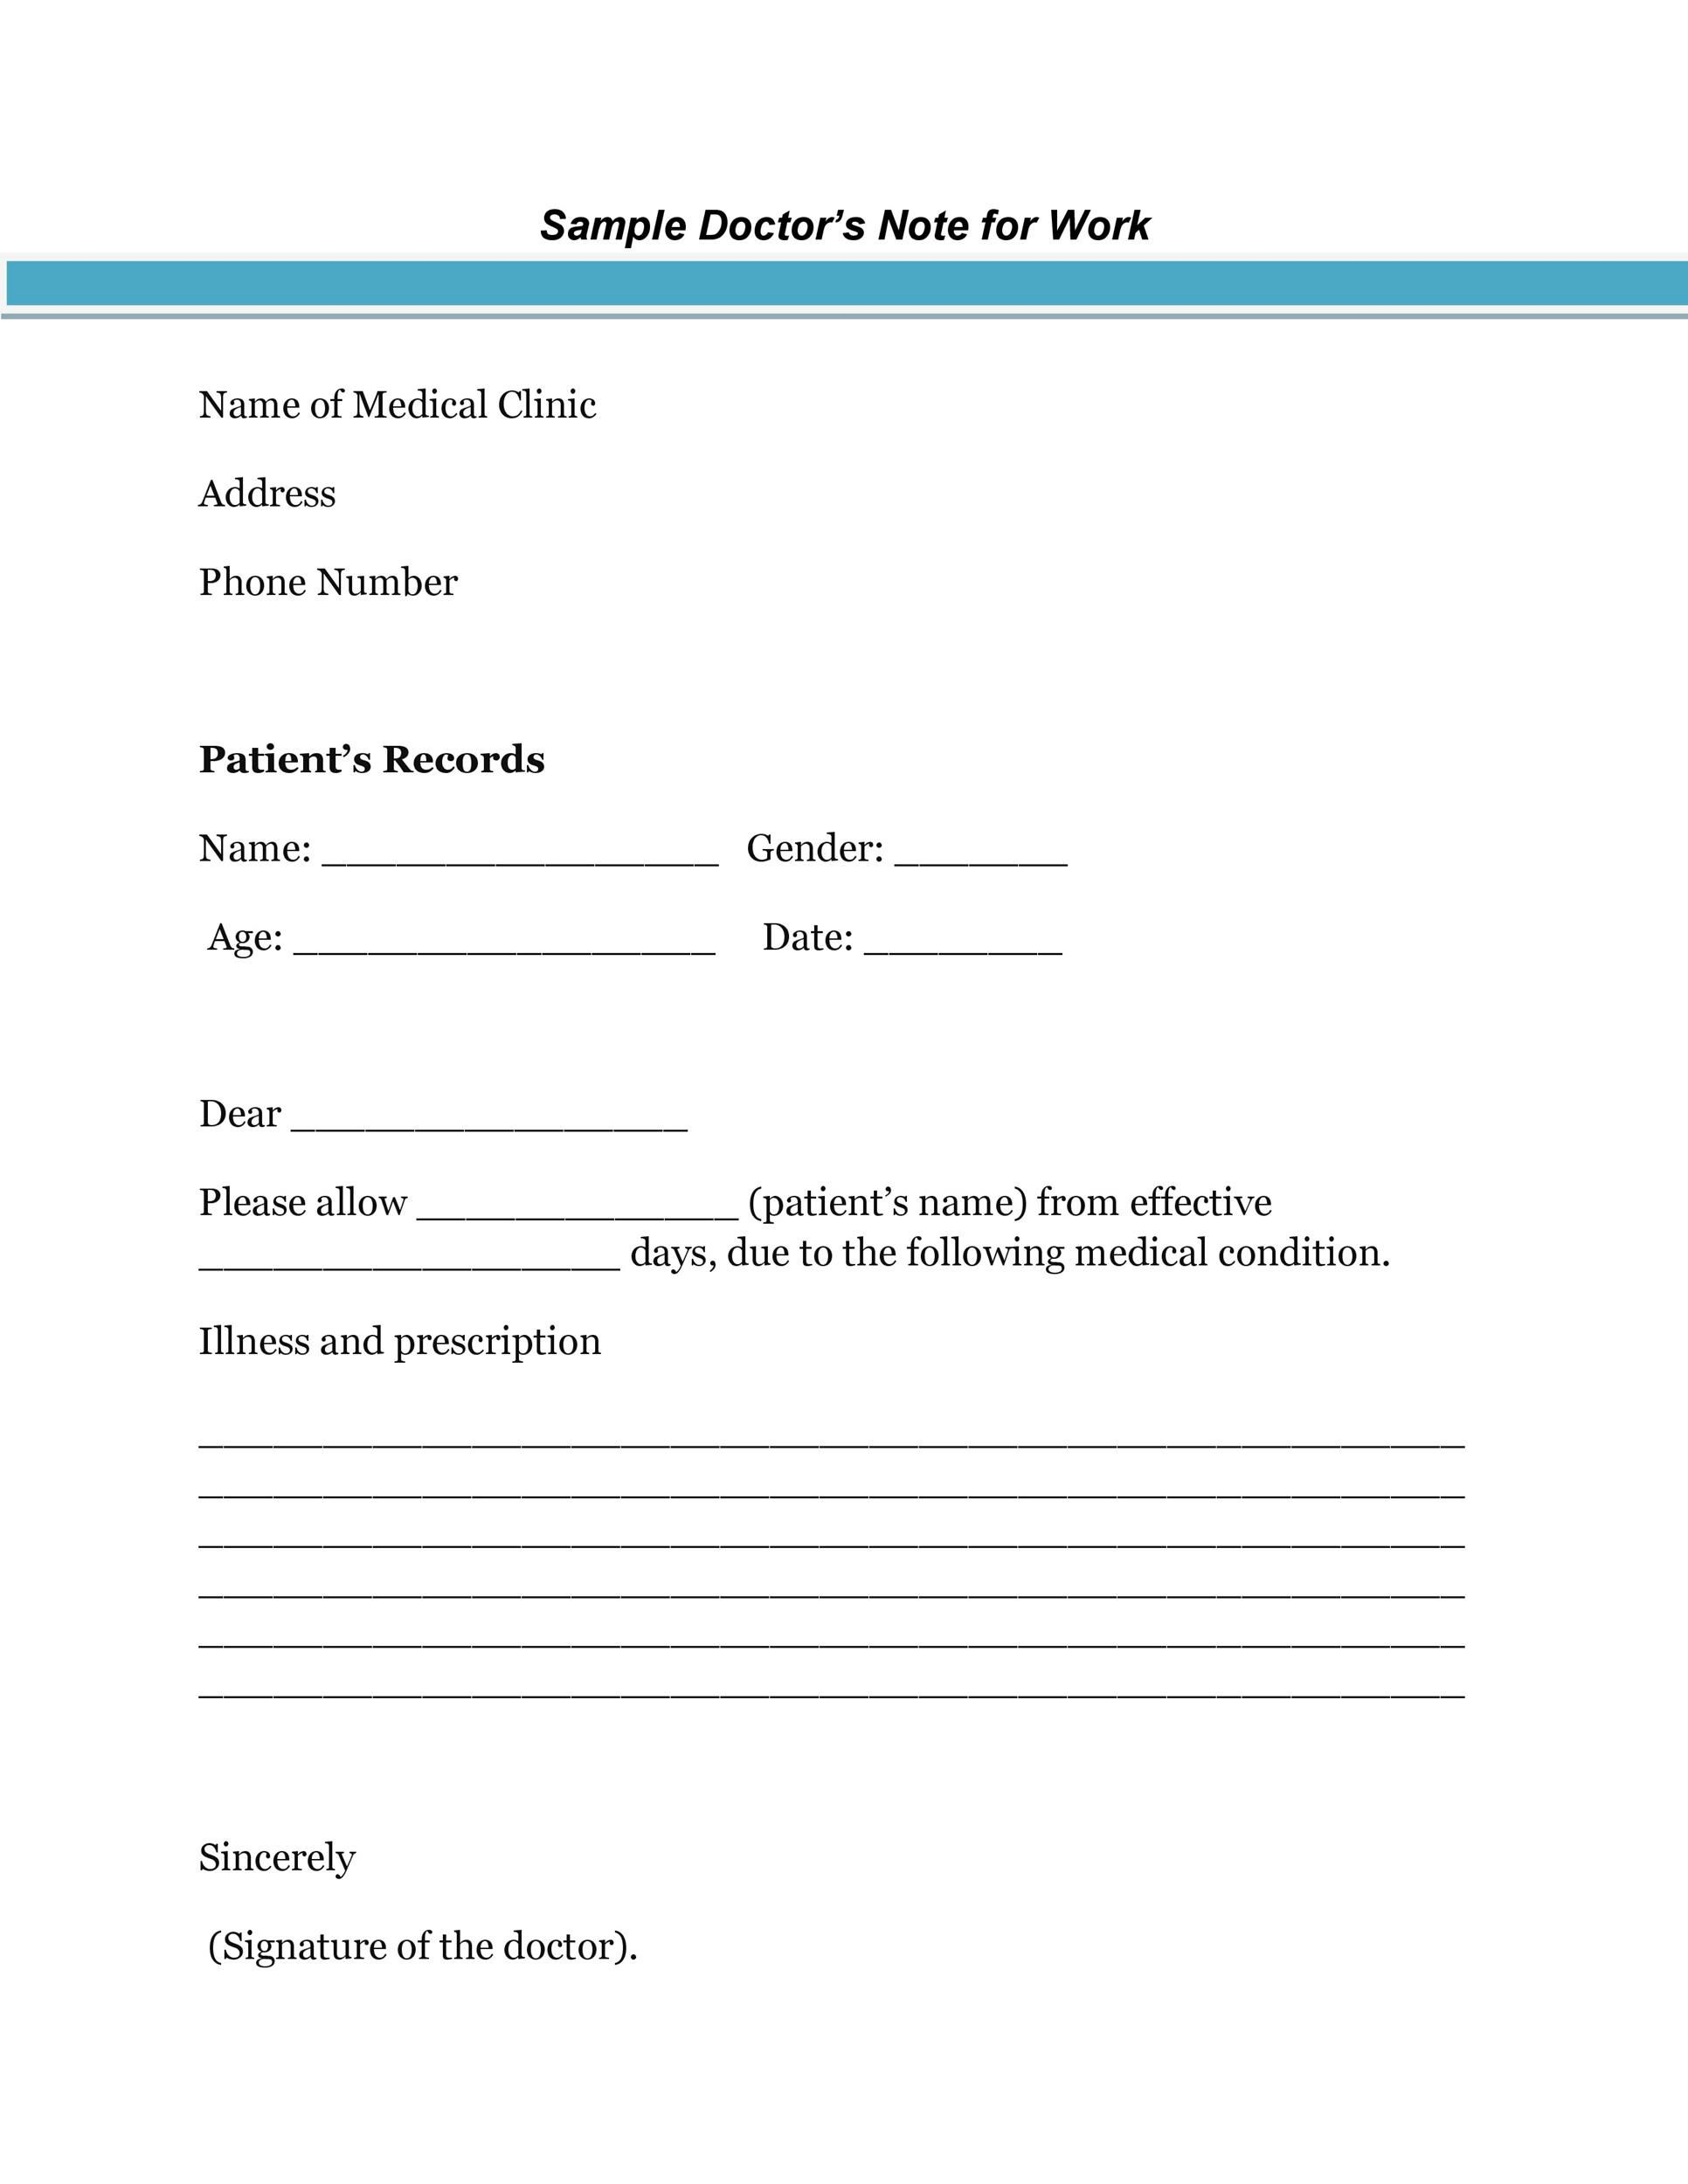 007 Fearsome Doctor Note Template Pdf Idea  Free Sample For WorkFull